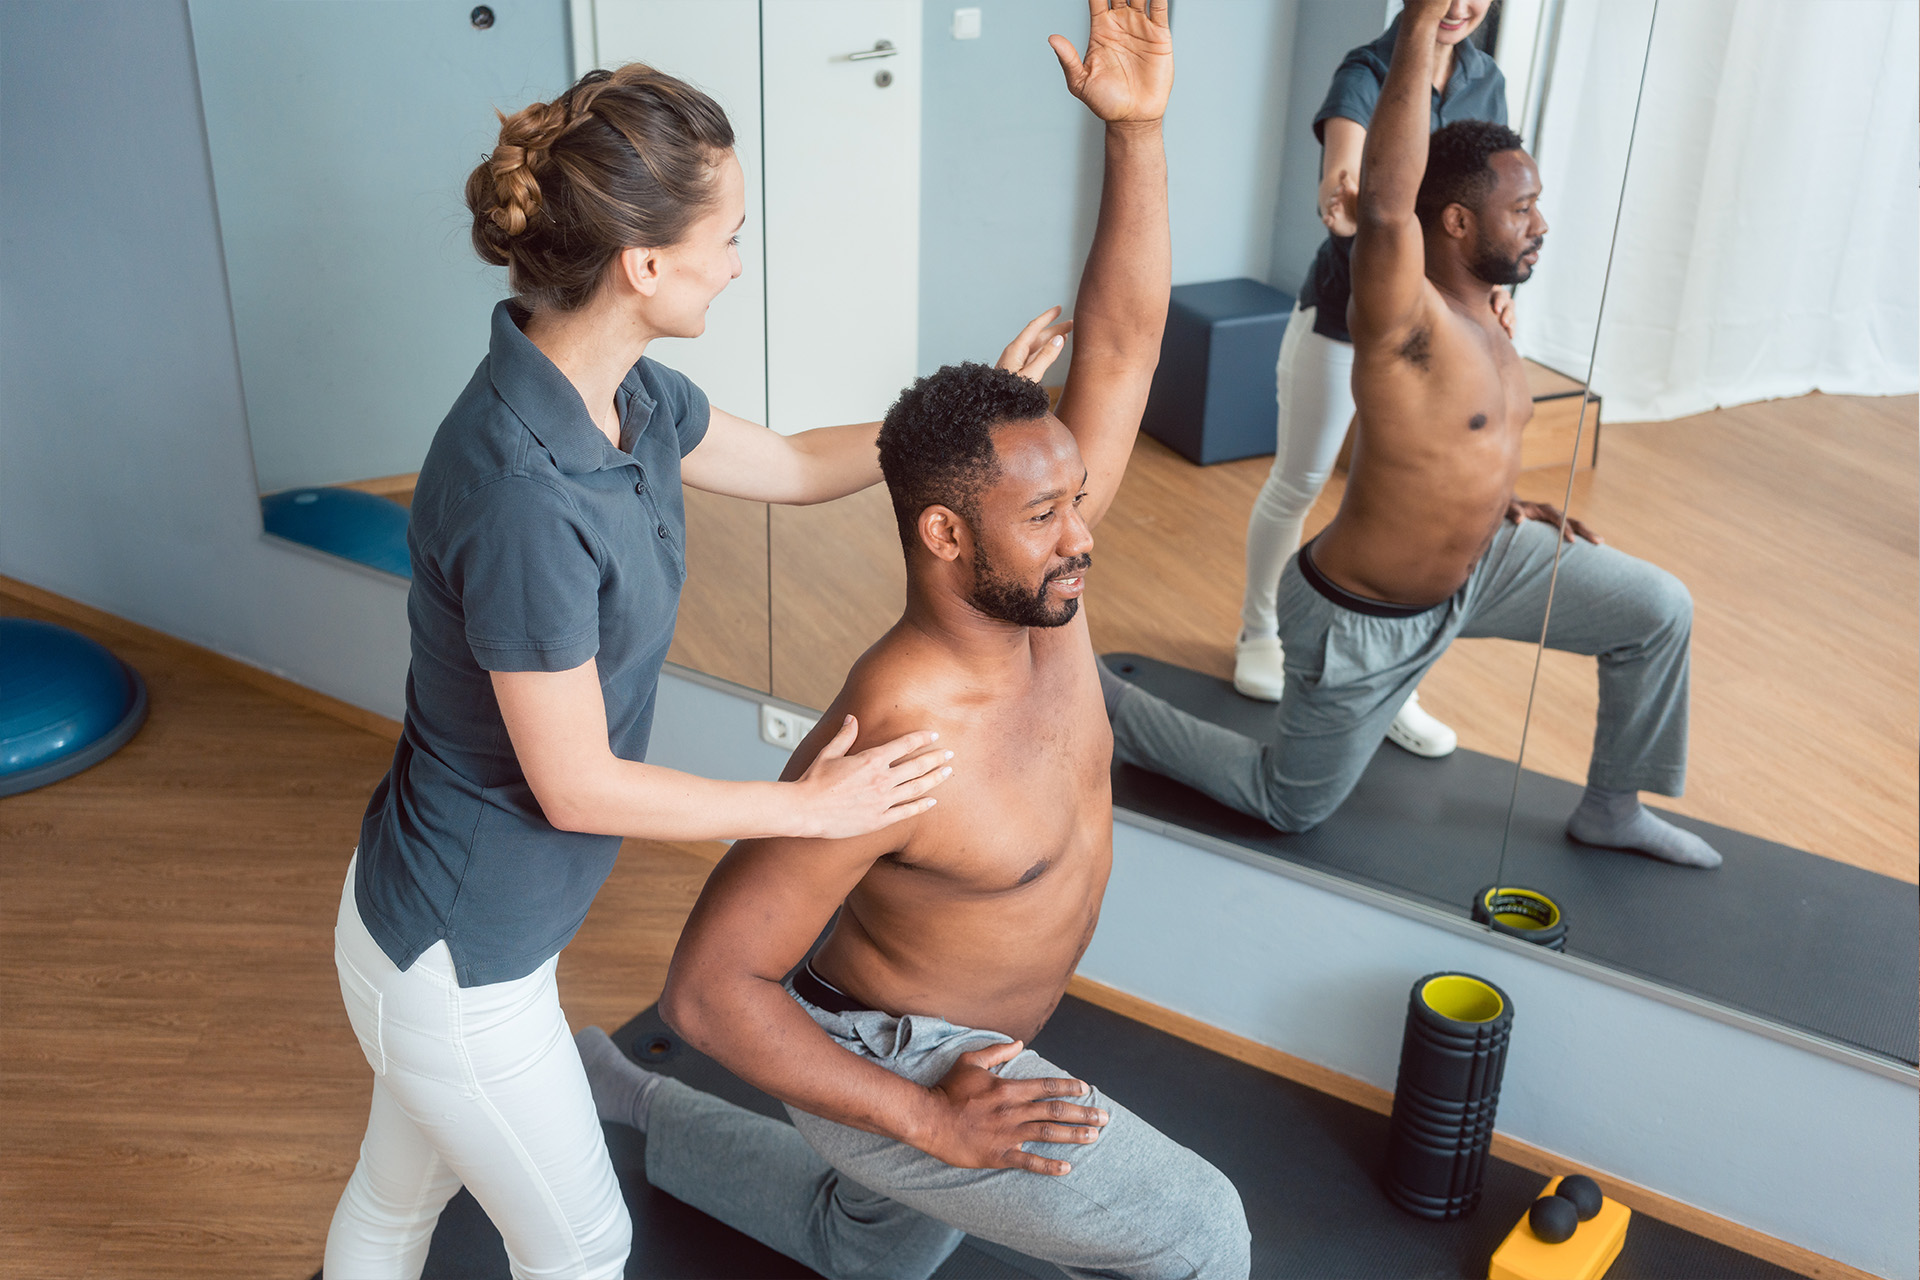 Image: man being helped to stretch by a woman physical therapist